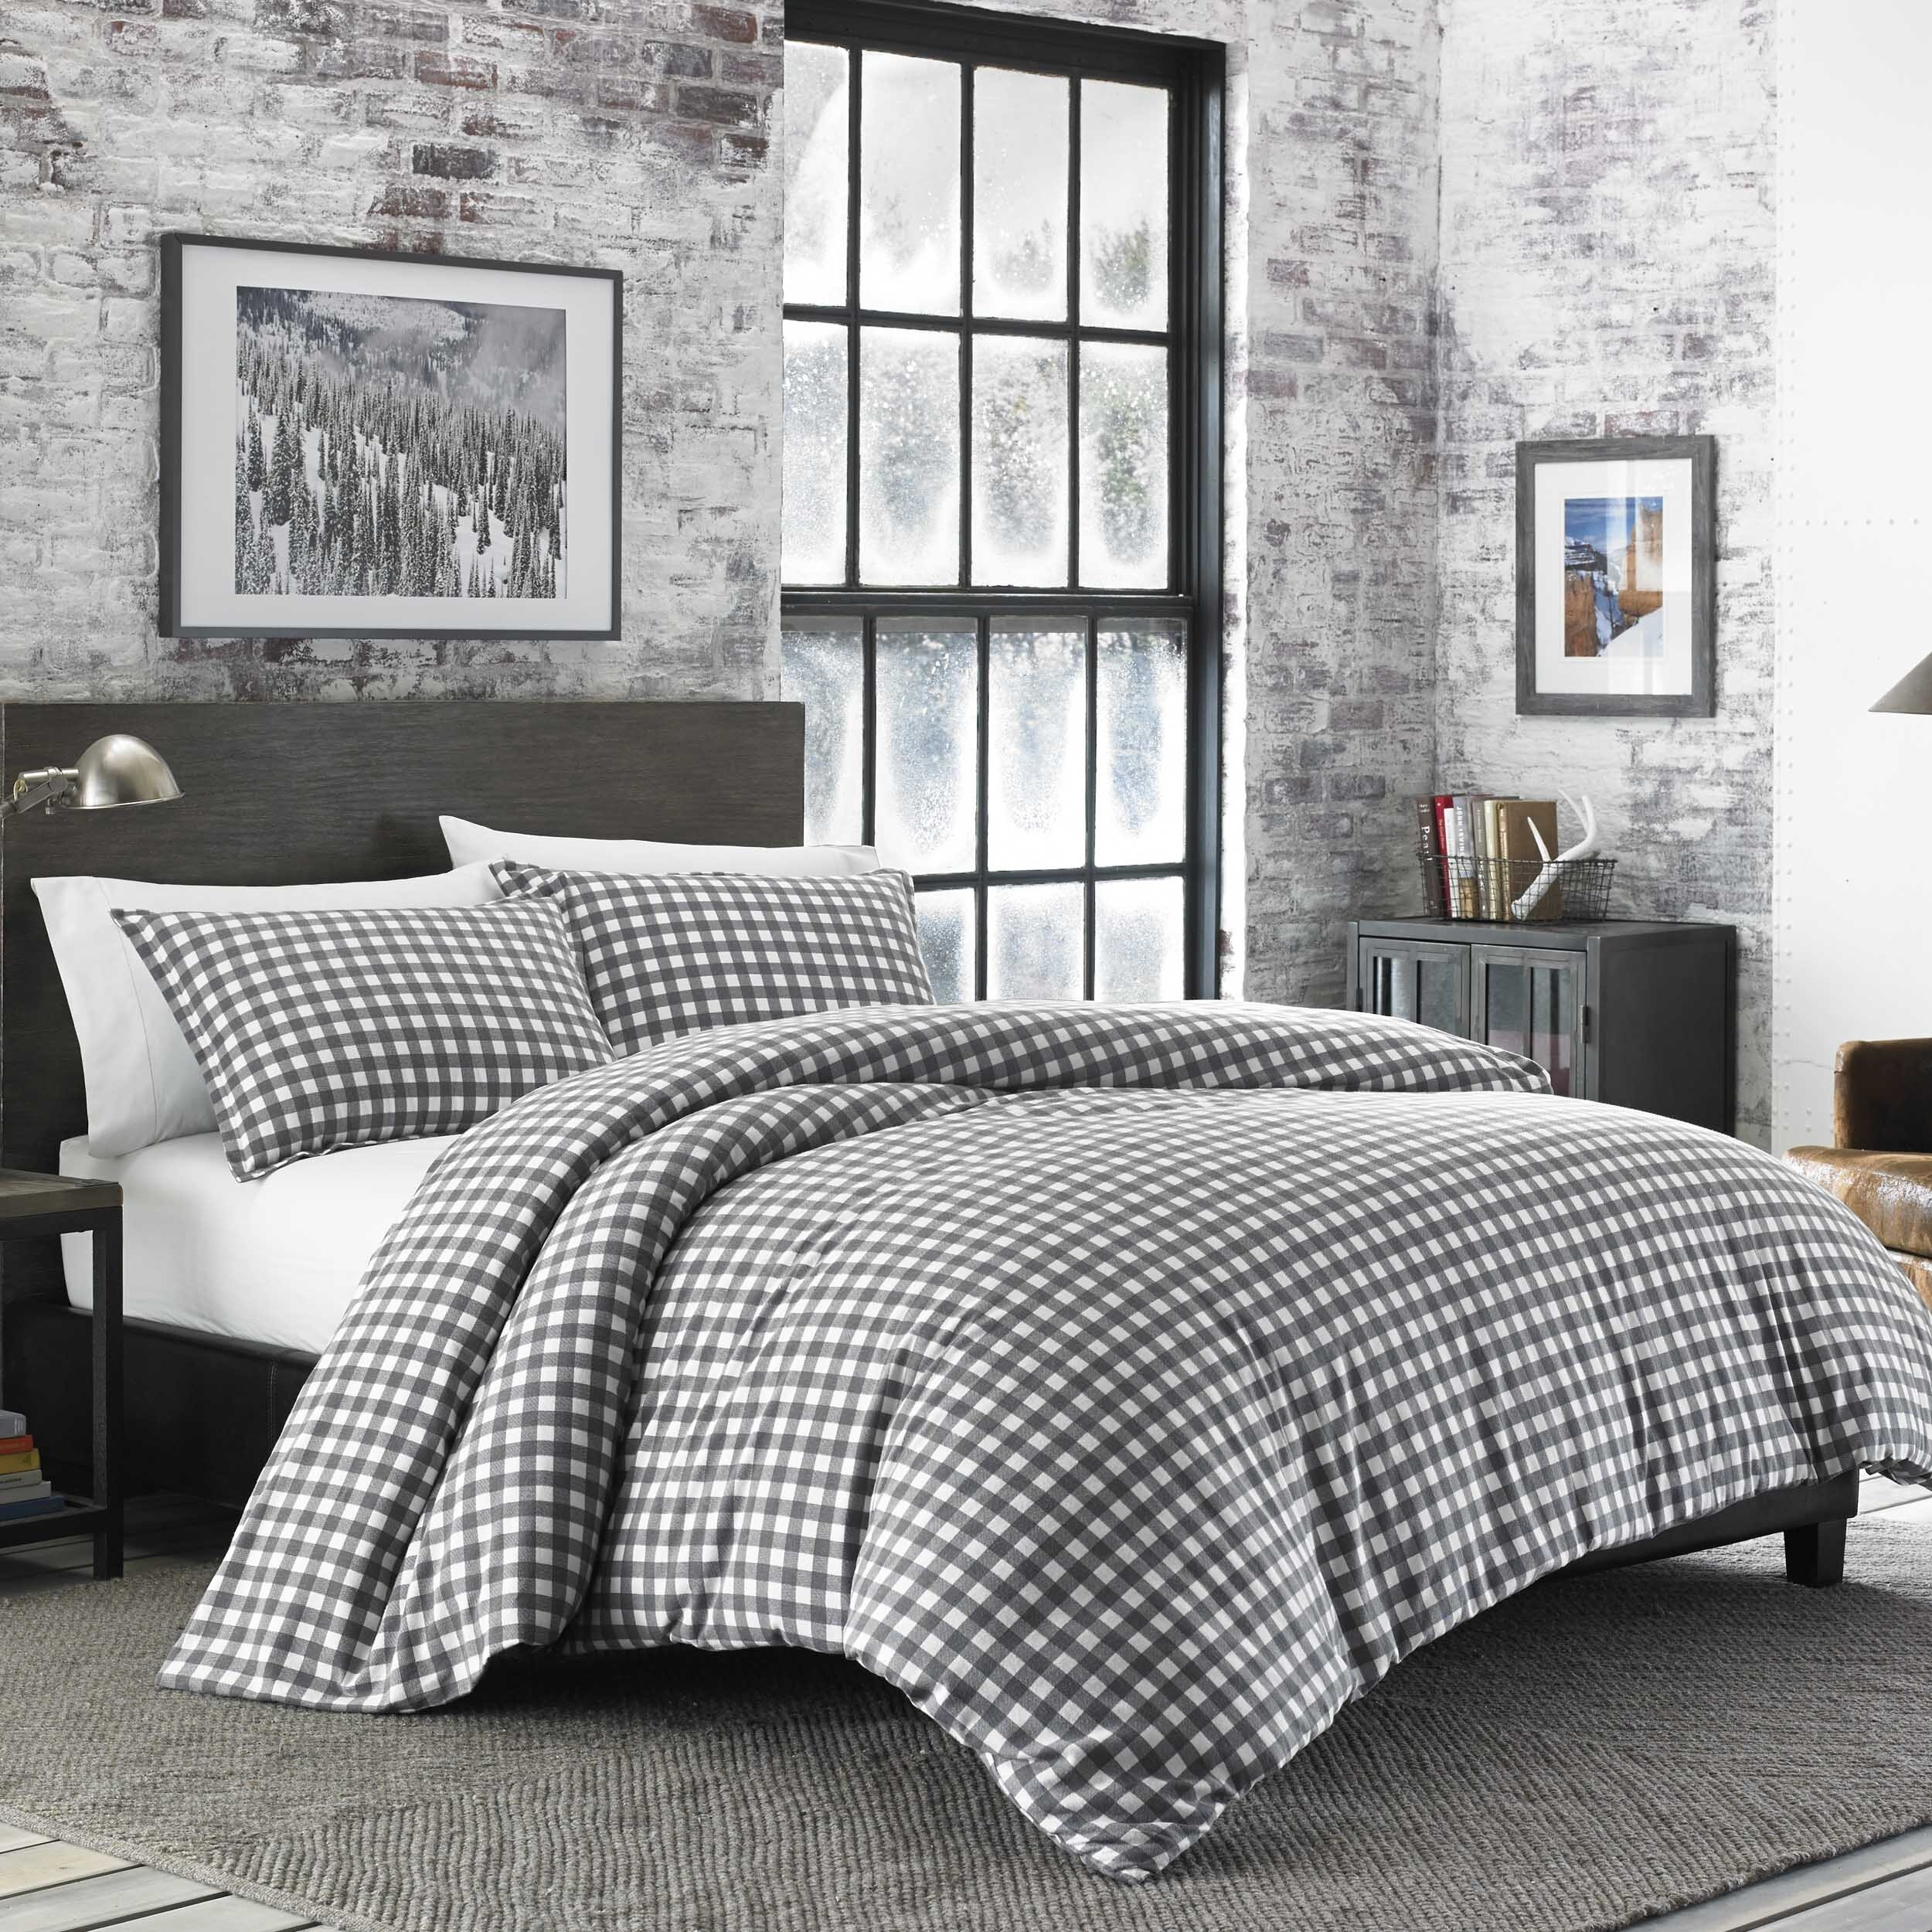 finish cover white your piping pick color linen multiple blue with pink colors duvet gray stripe